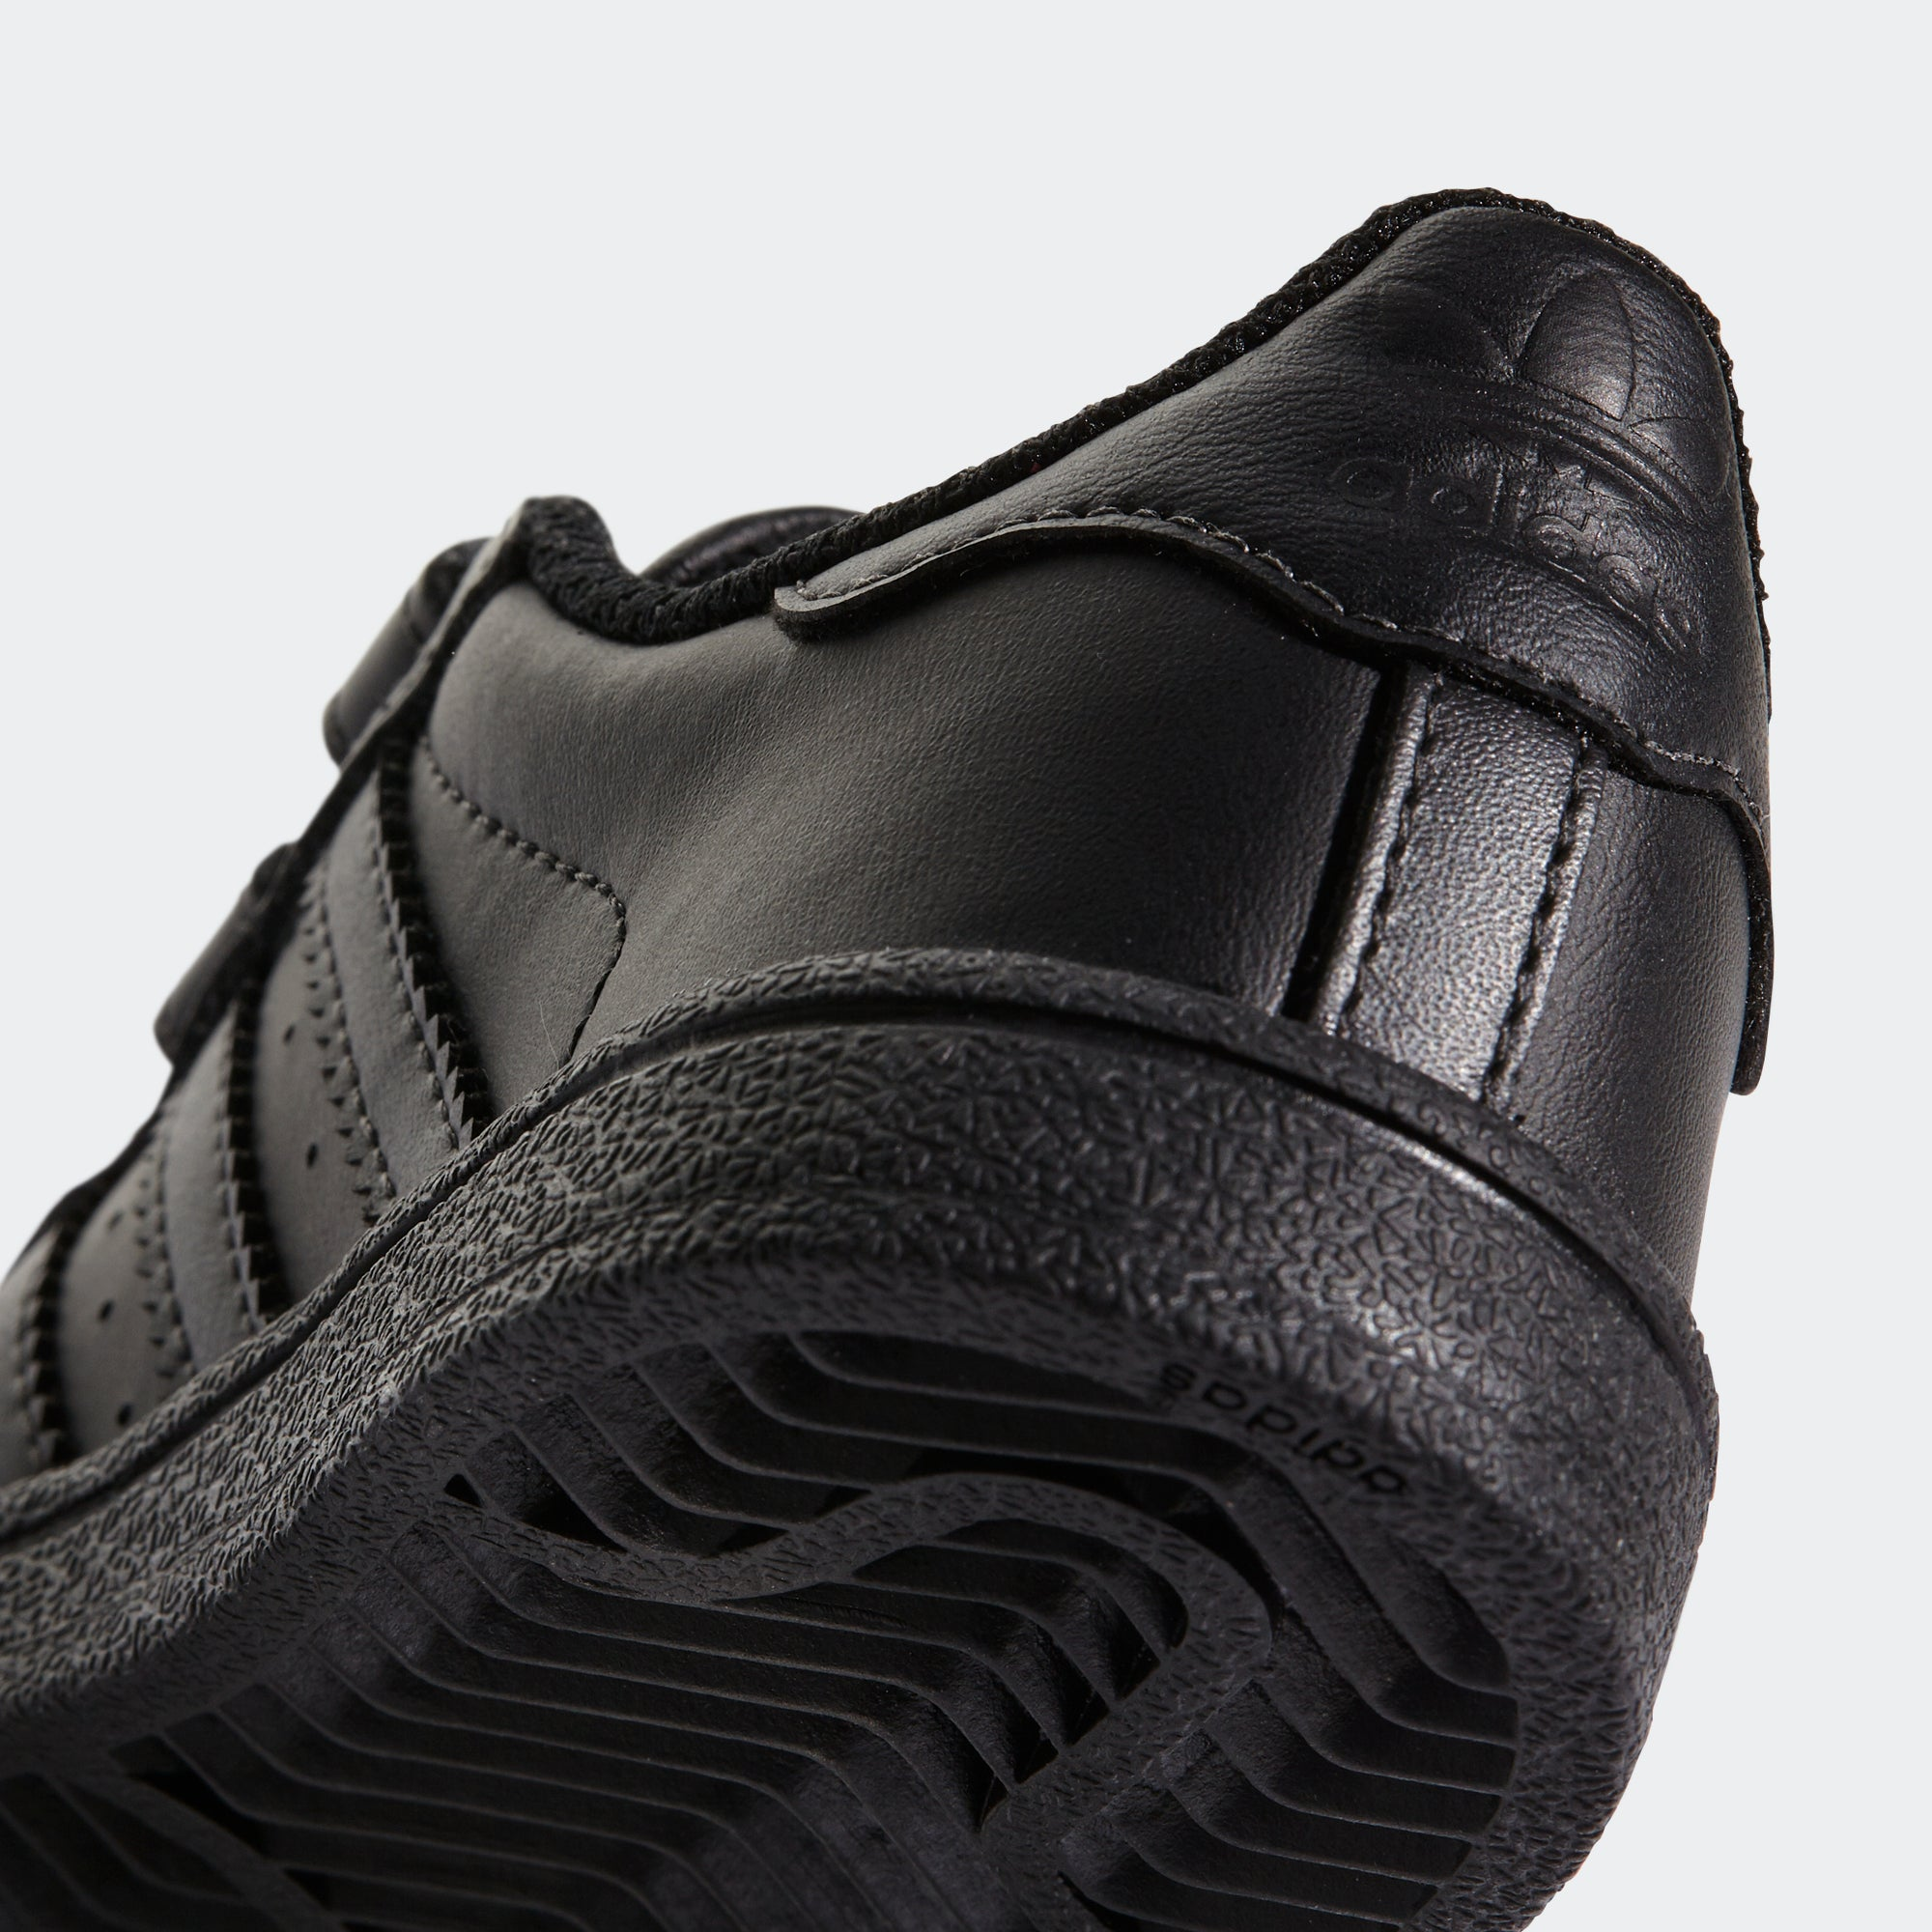 sale retailer 6a45c 42f11 Toddler's Adidas Originals Superstar Shoes Triple Black ...